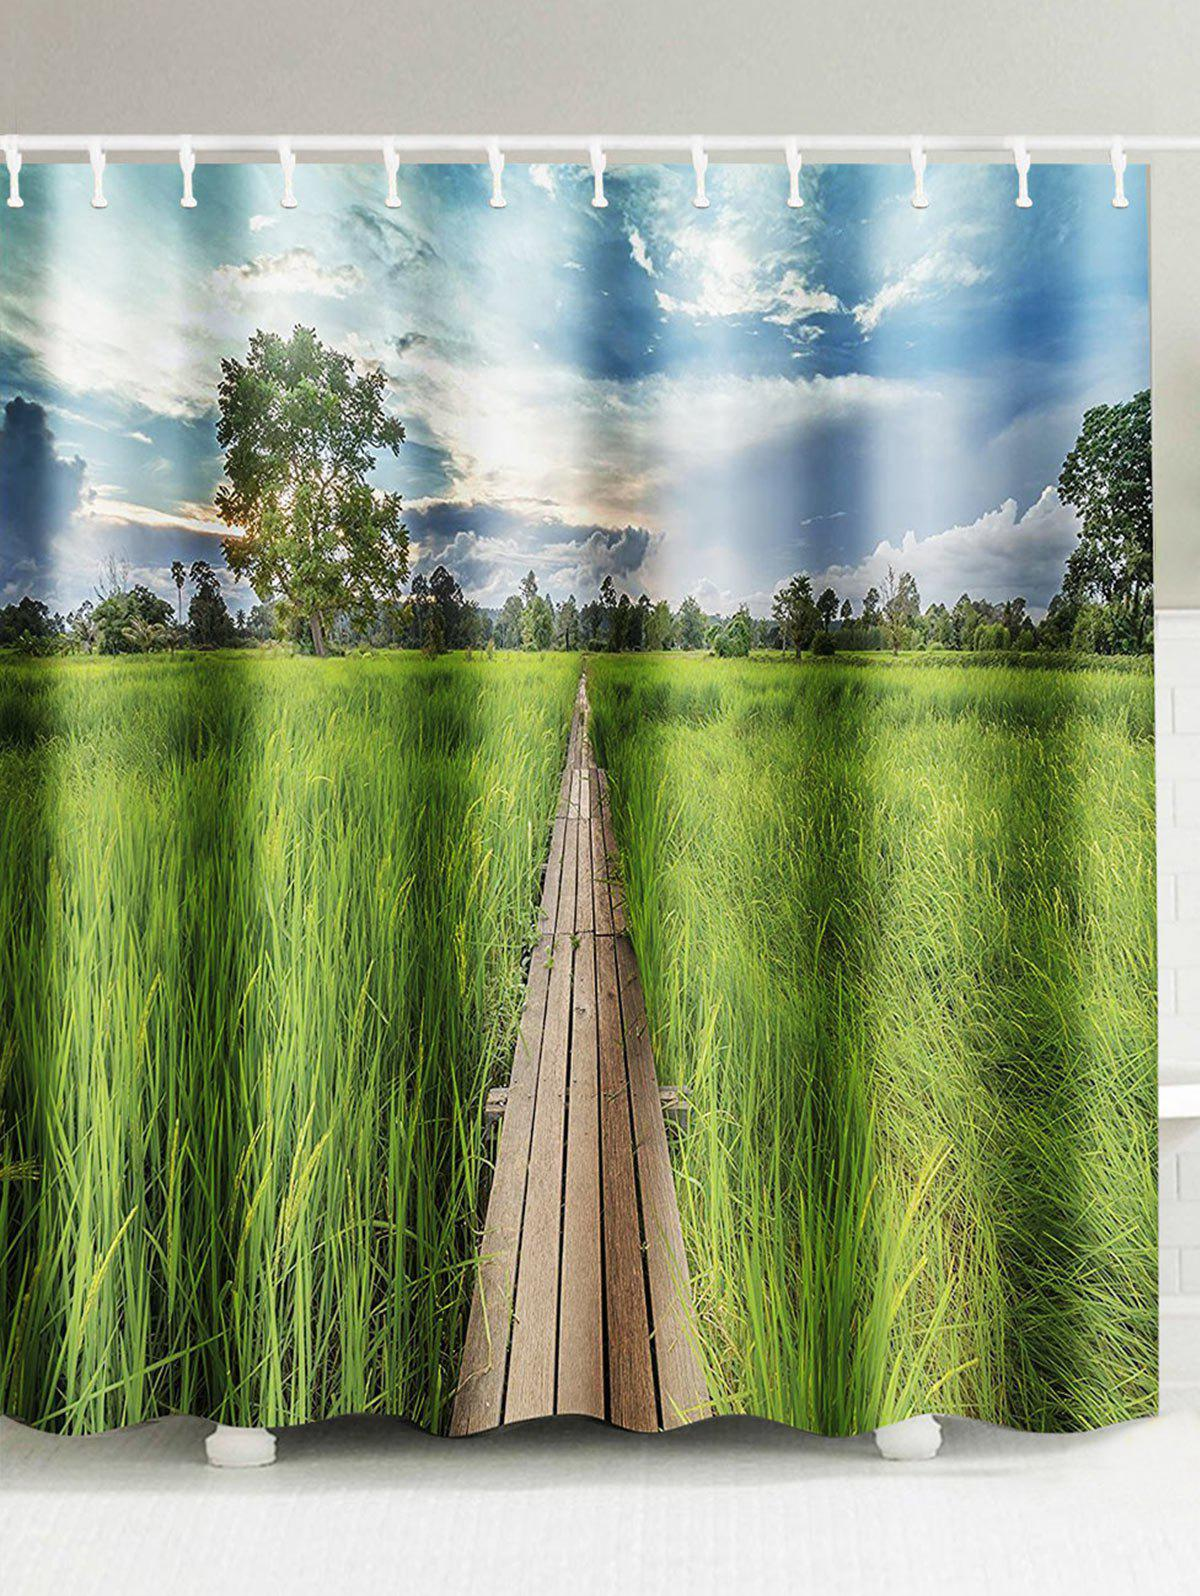 Paddy Field Landscape Waterproof Shower Curtain chinese ink landscape waterproof shower curtain